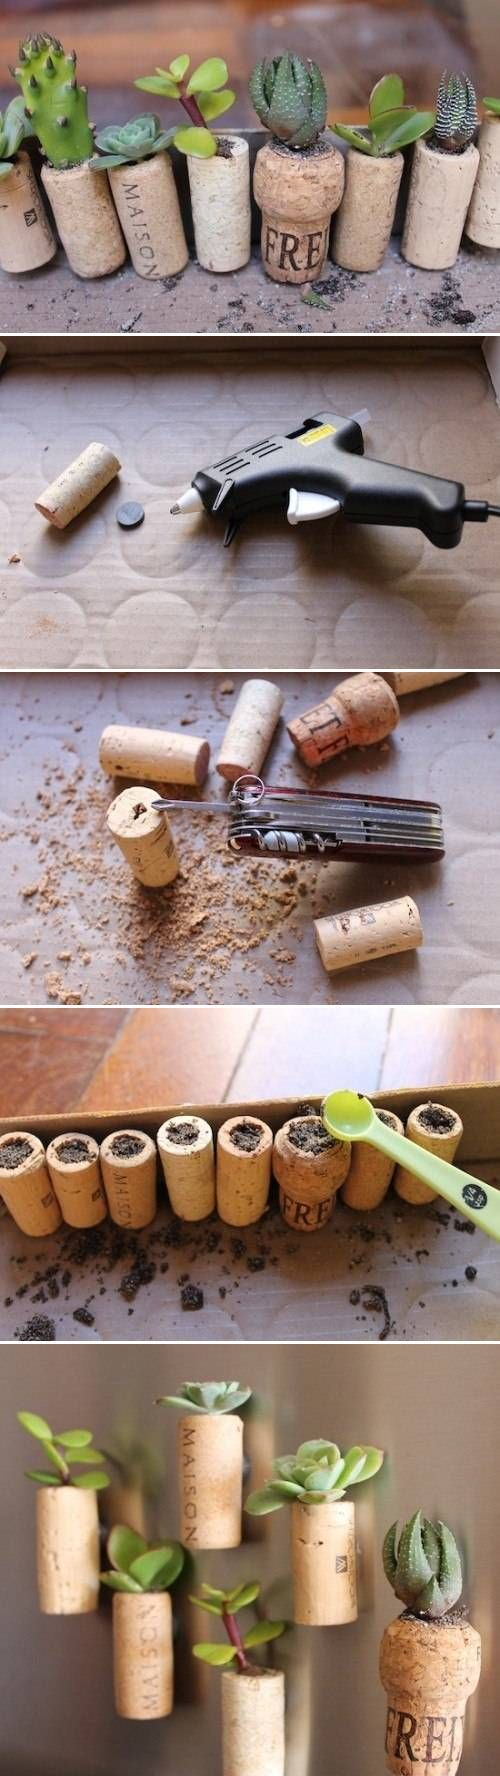 DIY Wine Cork Garden                                                                                                                                                                                 Mais